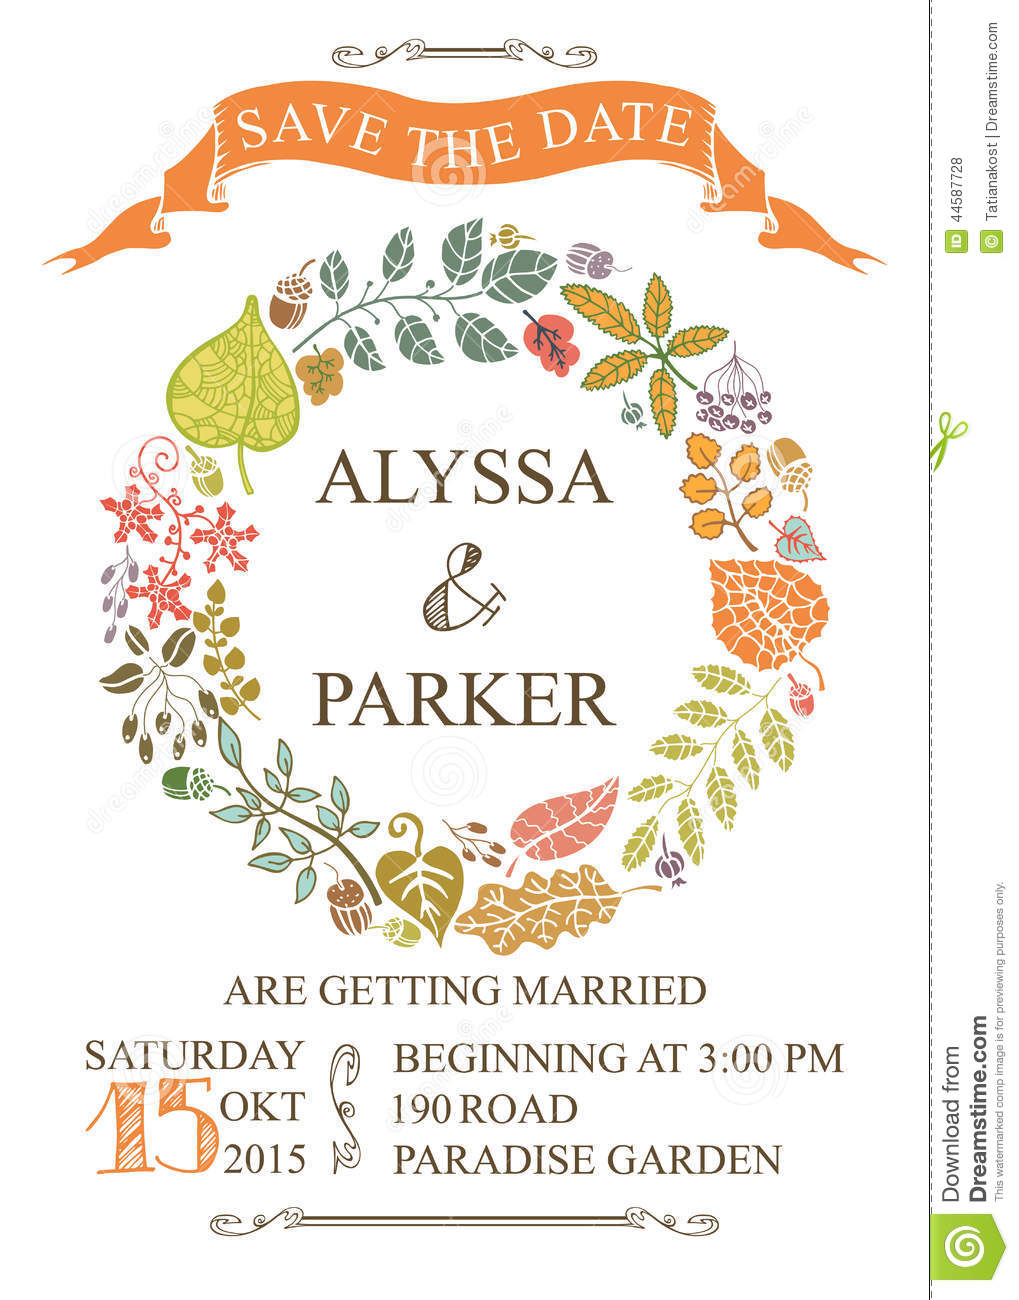 free vintage save the date templates - autumn wedding save date card with leaves wreath stock